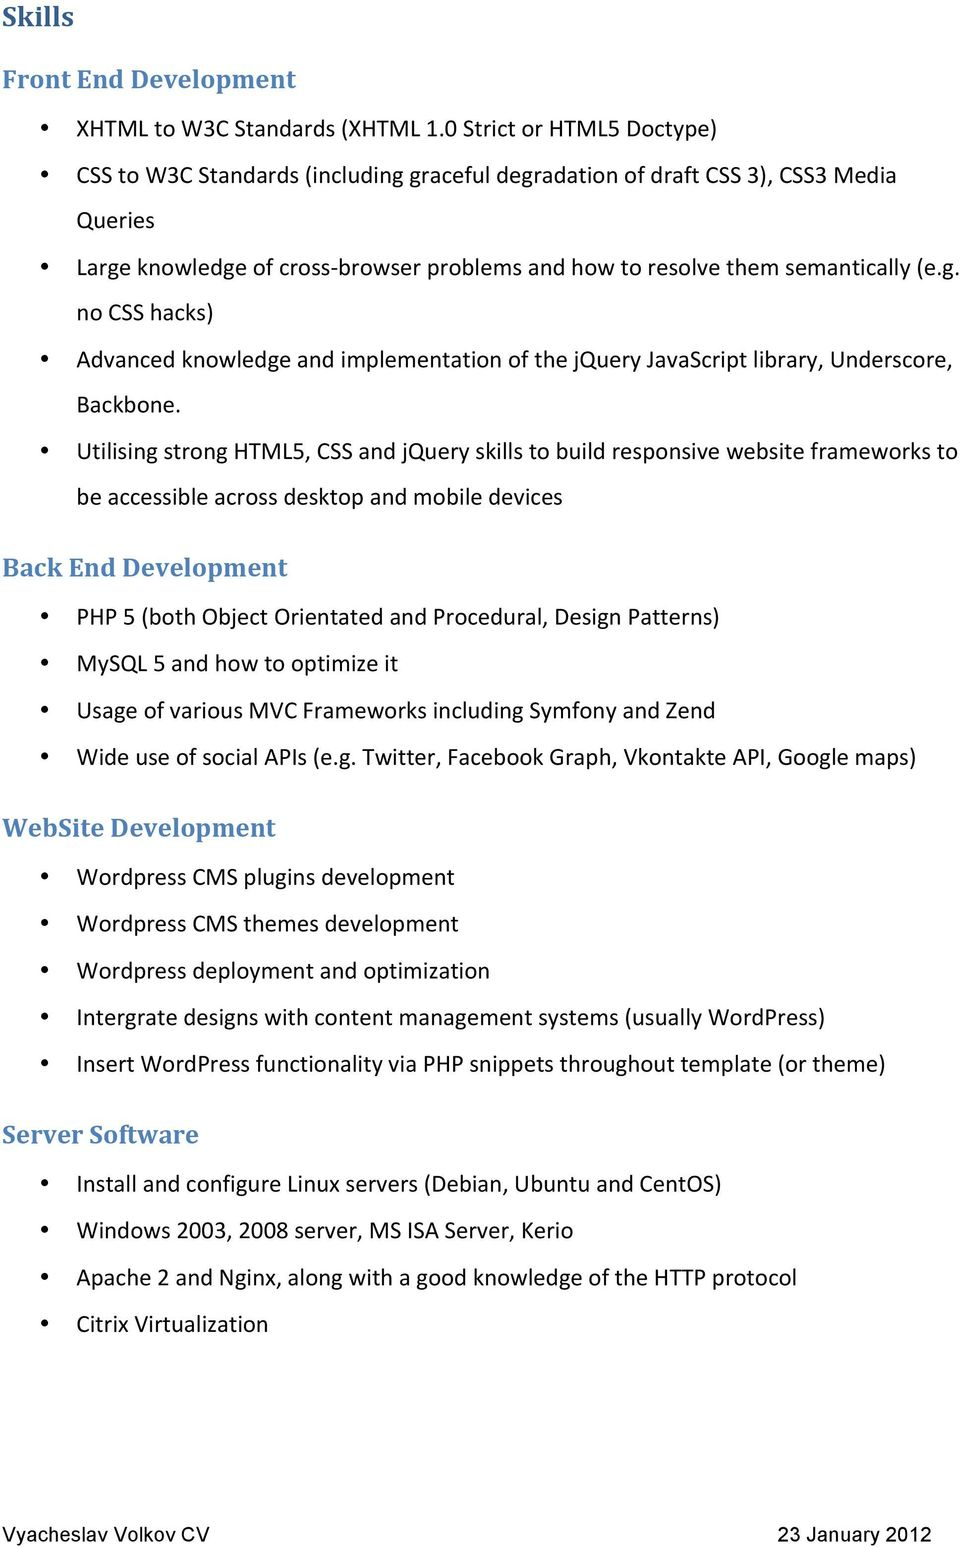 g. no CSS hacks) Advanced knowledge and implementation of the jquery JavaScript library, Underscore, Backbone.